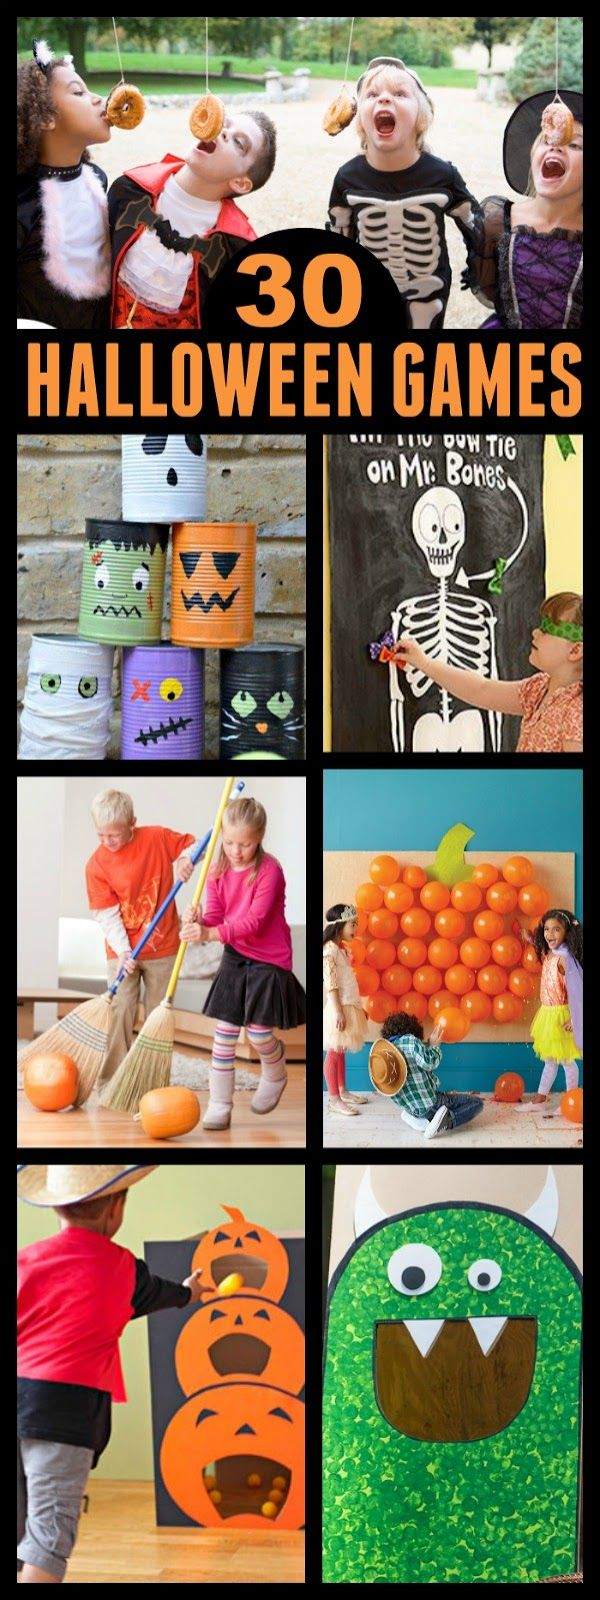 30 halloween game ideas for kids these are so cool pin for later - Halloween Decorations For Kids To Make